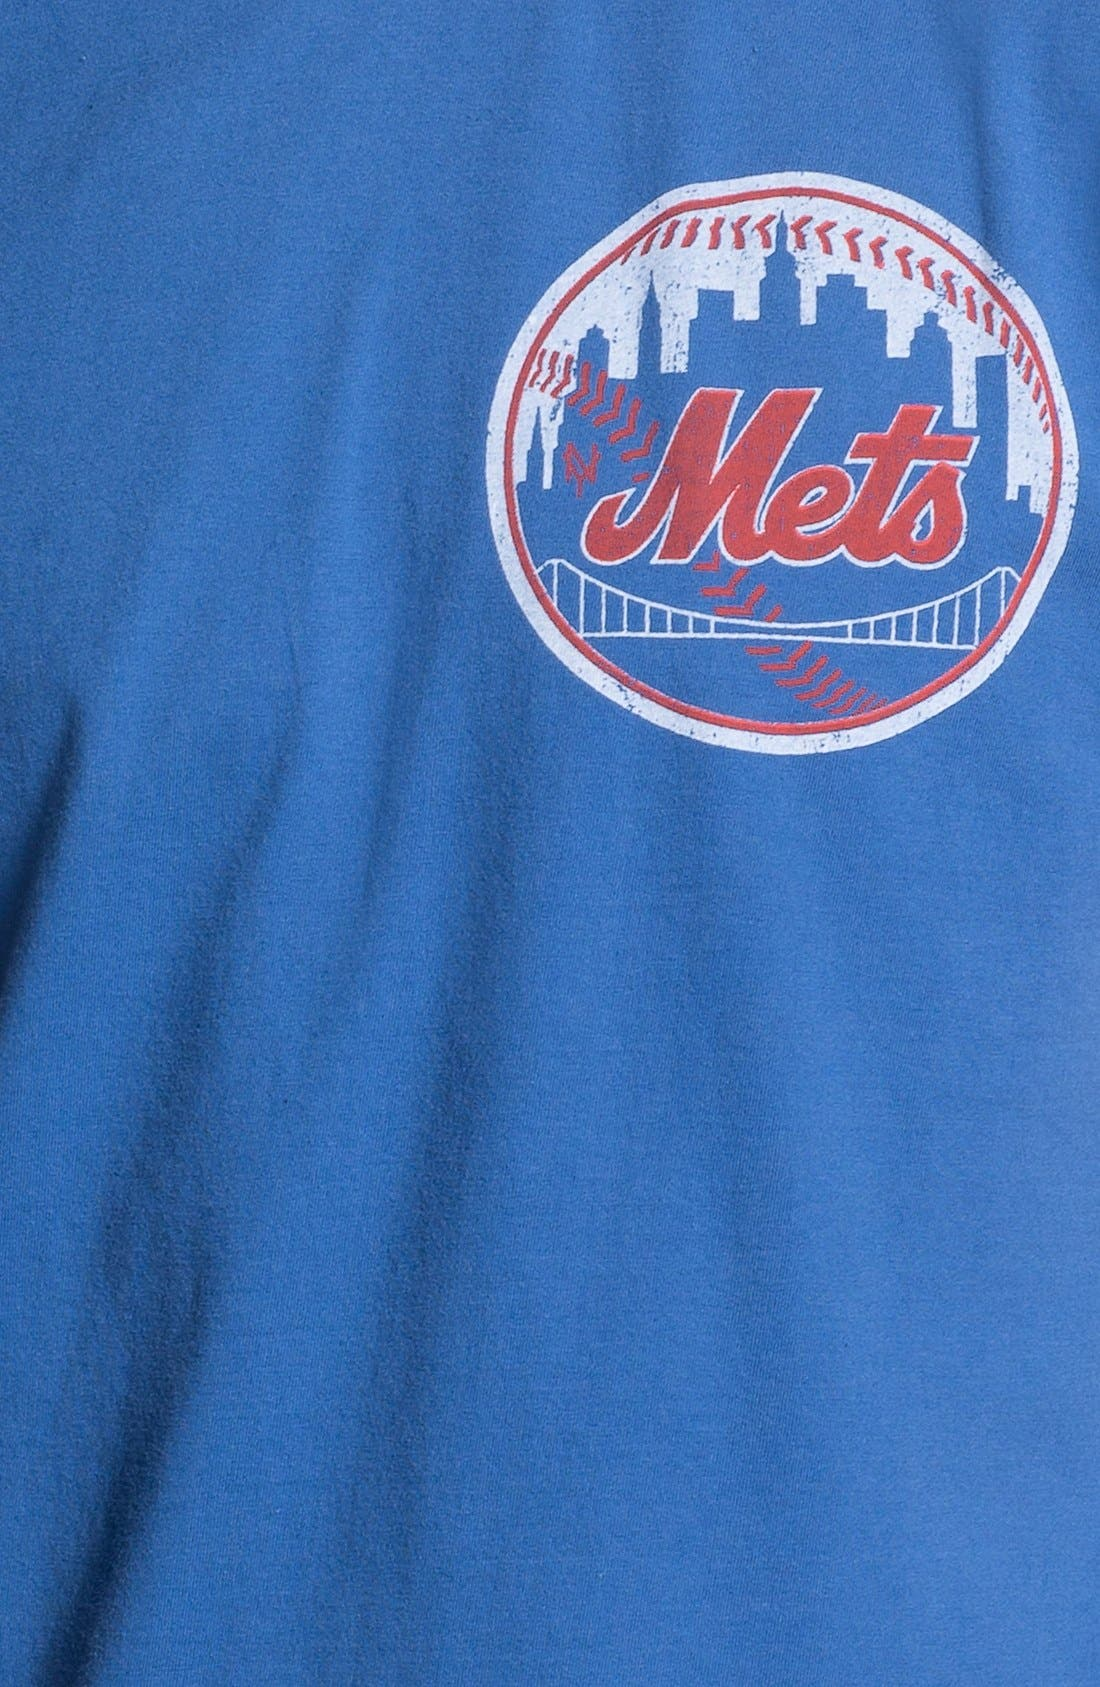 Alternate Image 3  - Red Jacket 'New York Mets' Trim Fit Ringer T-Shirt (Men)